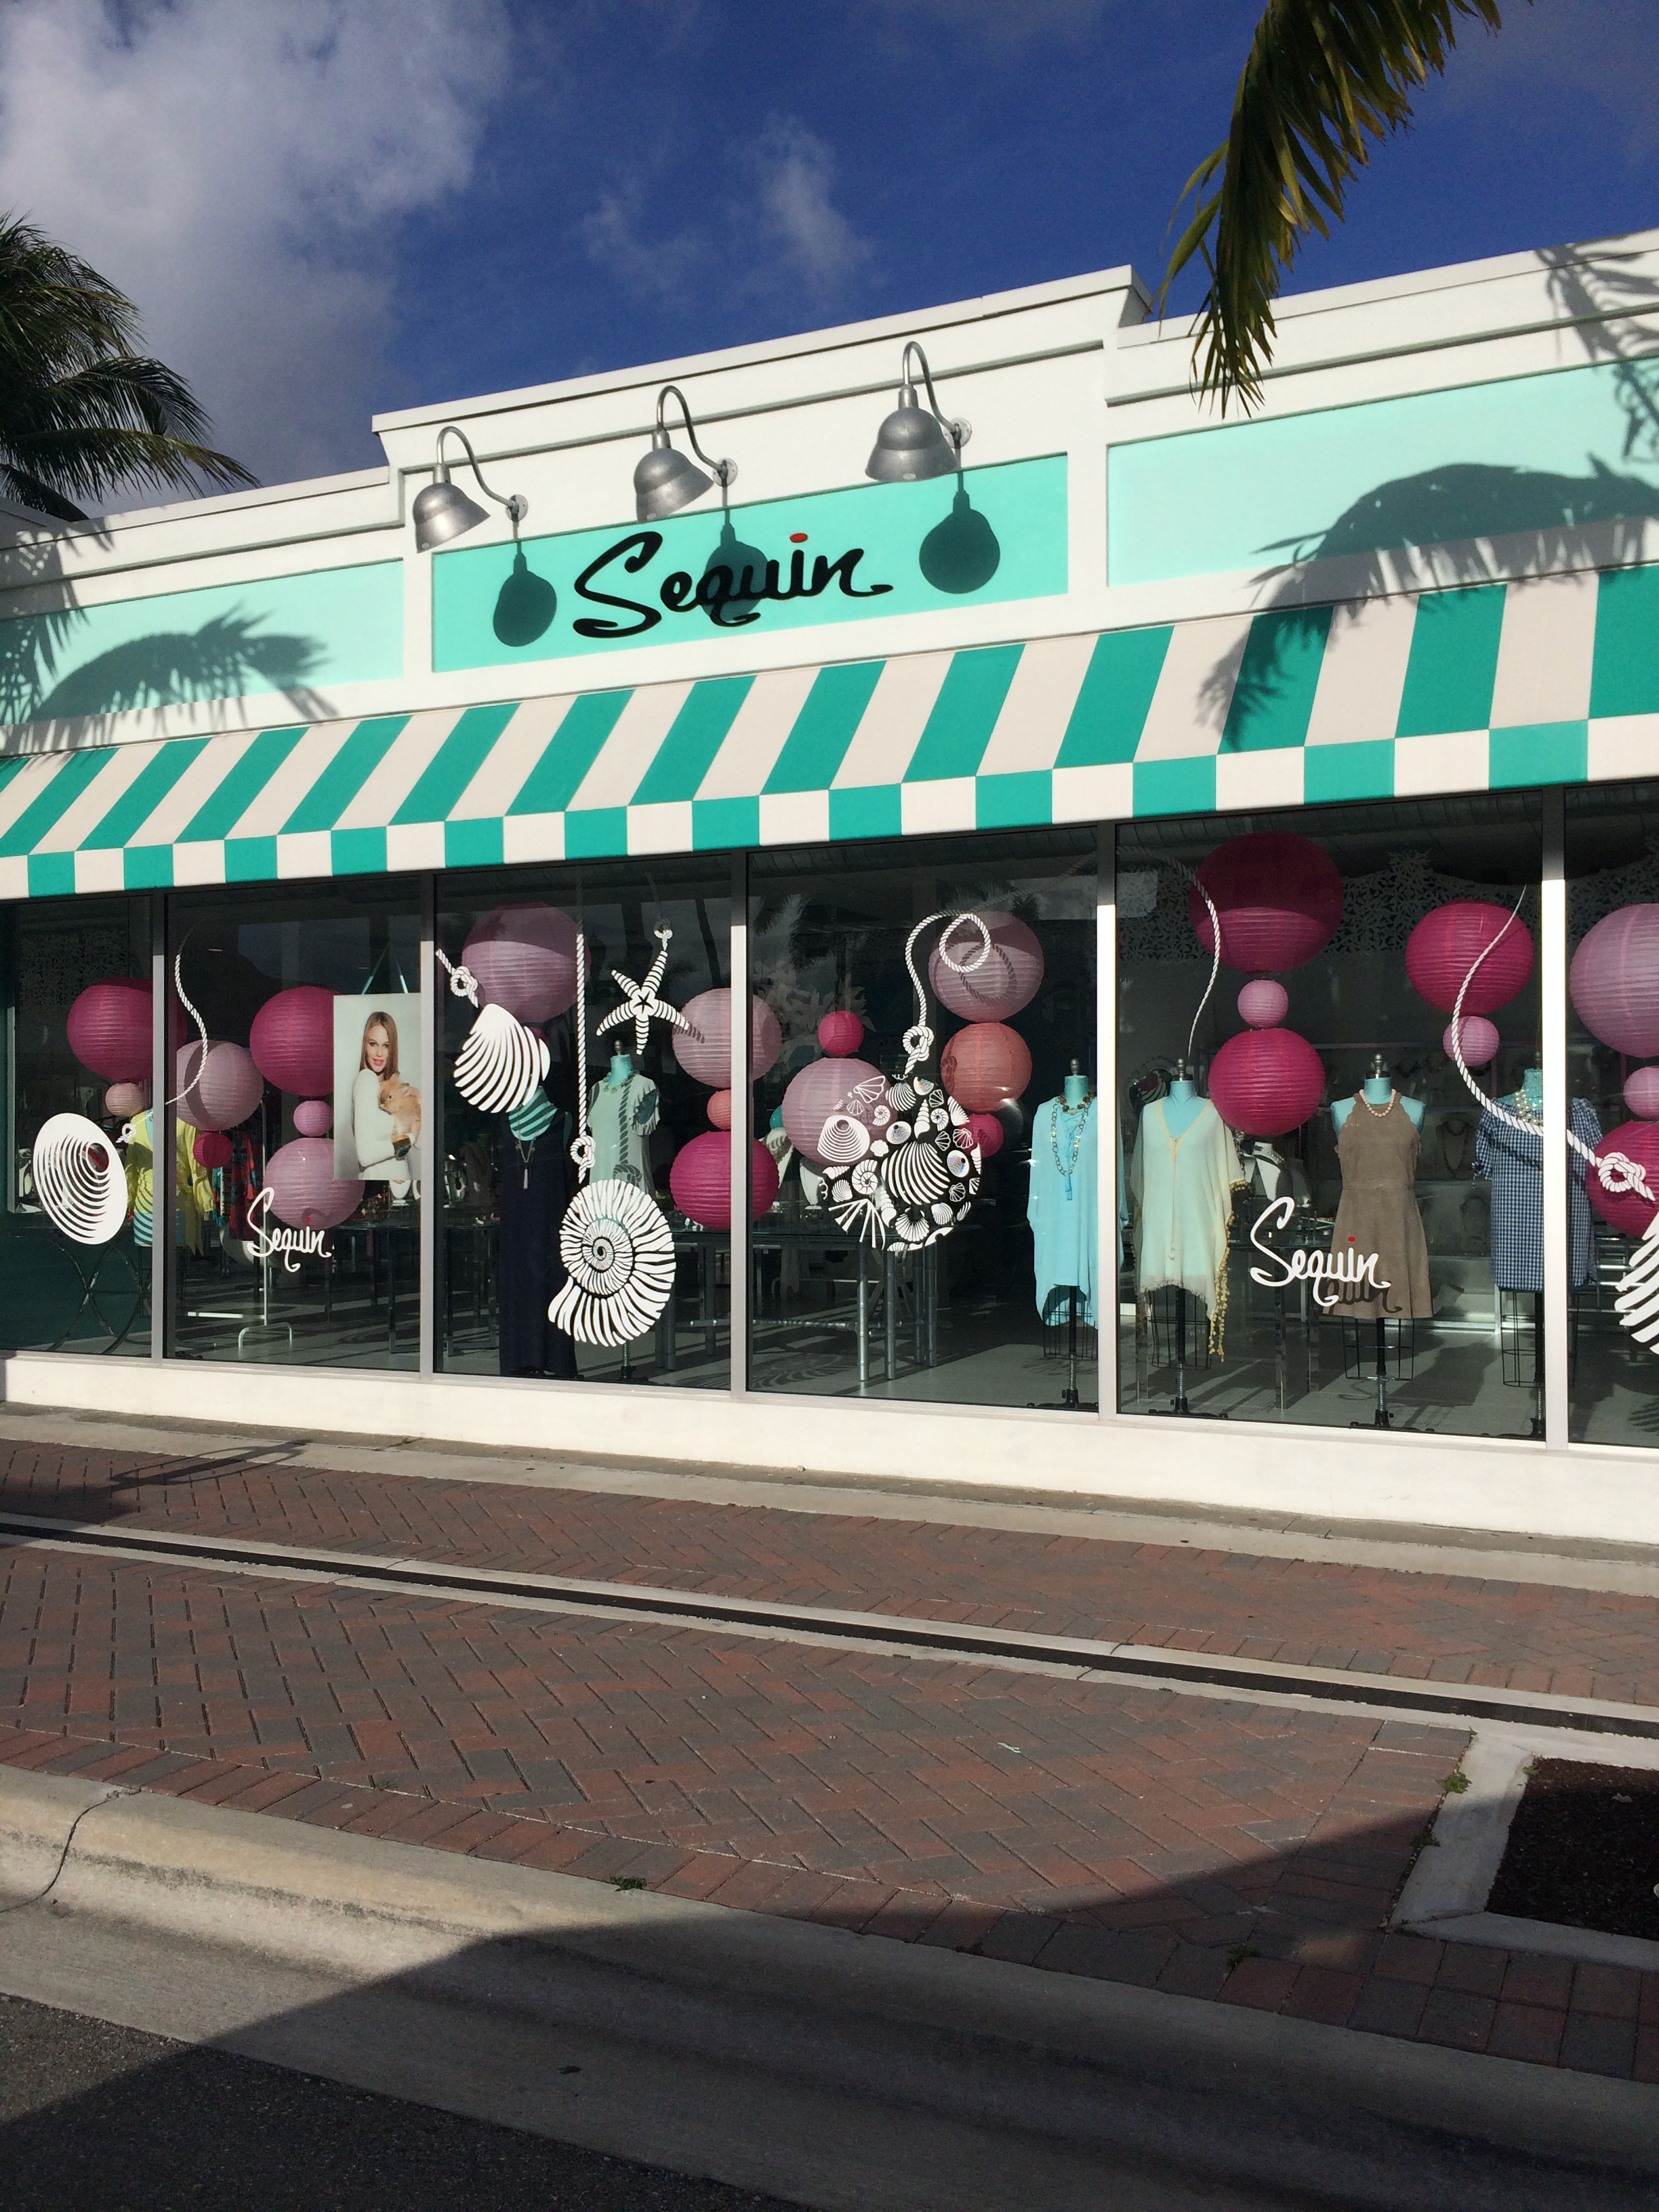 A Chic and Stylish Vacation Destination: Delray Beach, Florida